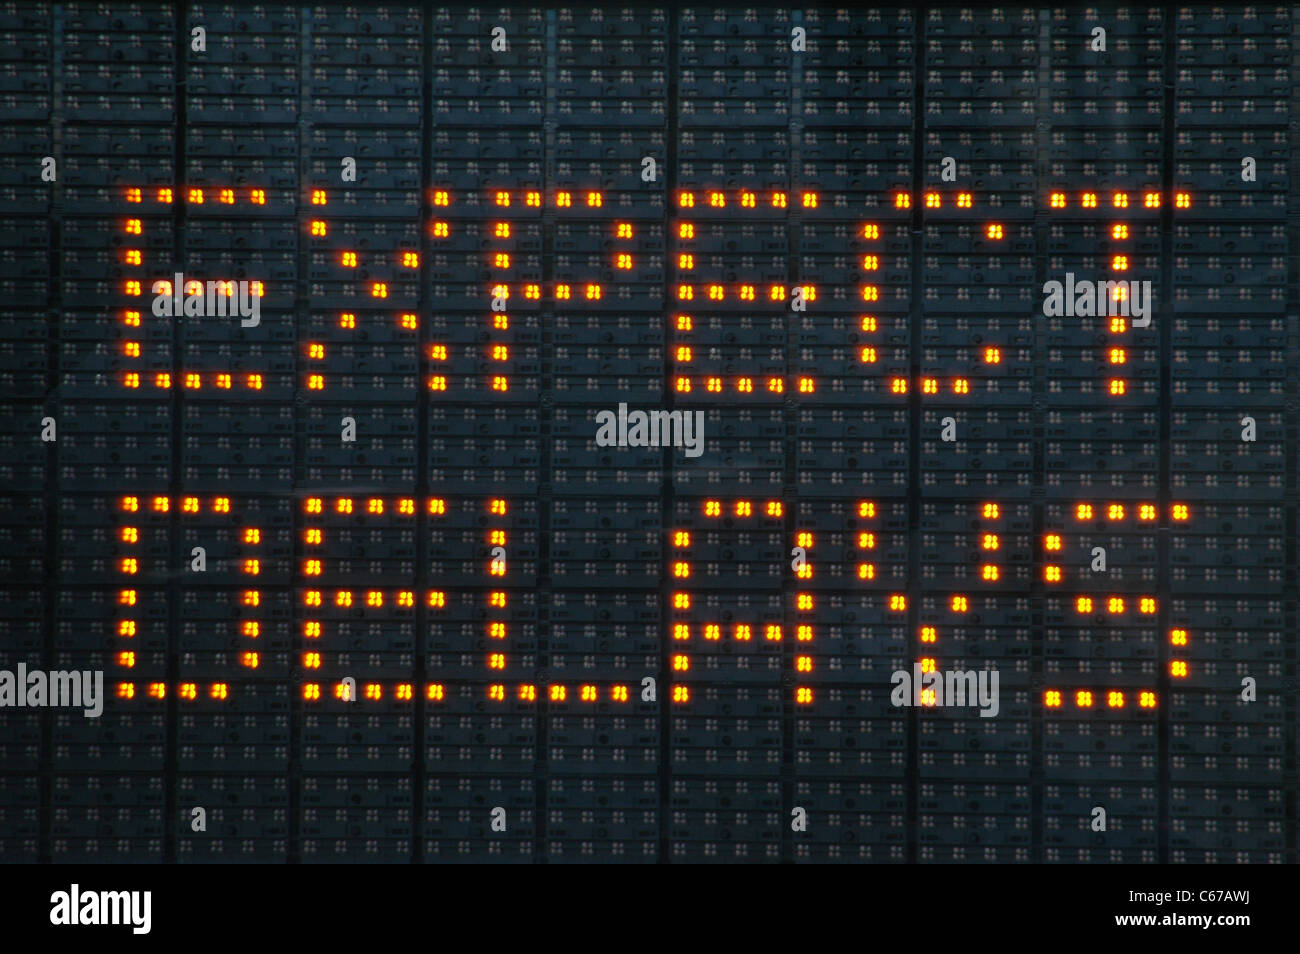 Expect Delays Sign - Stock Image